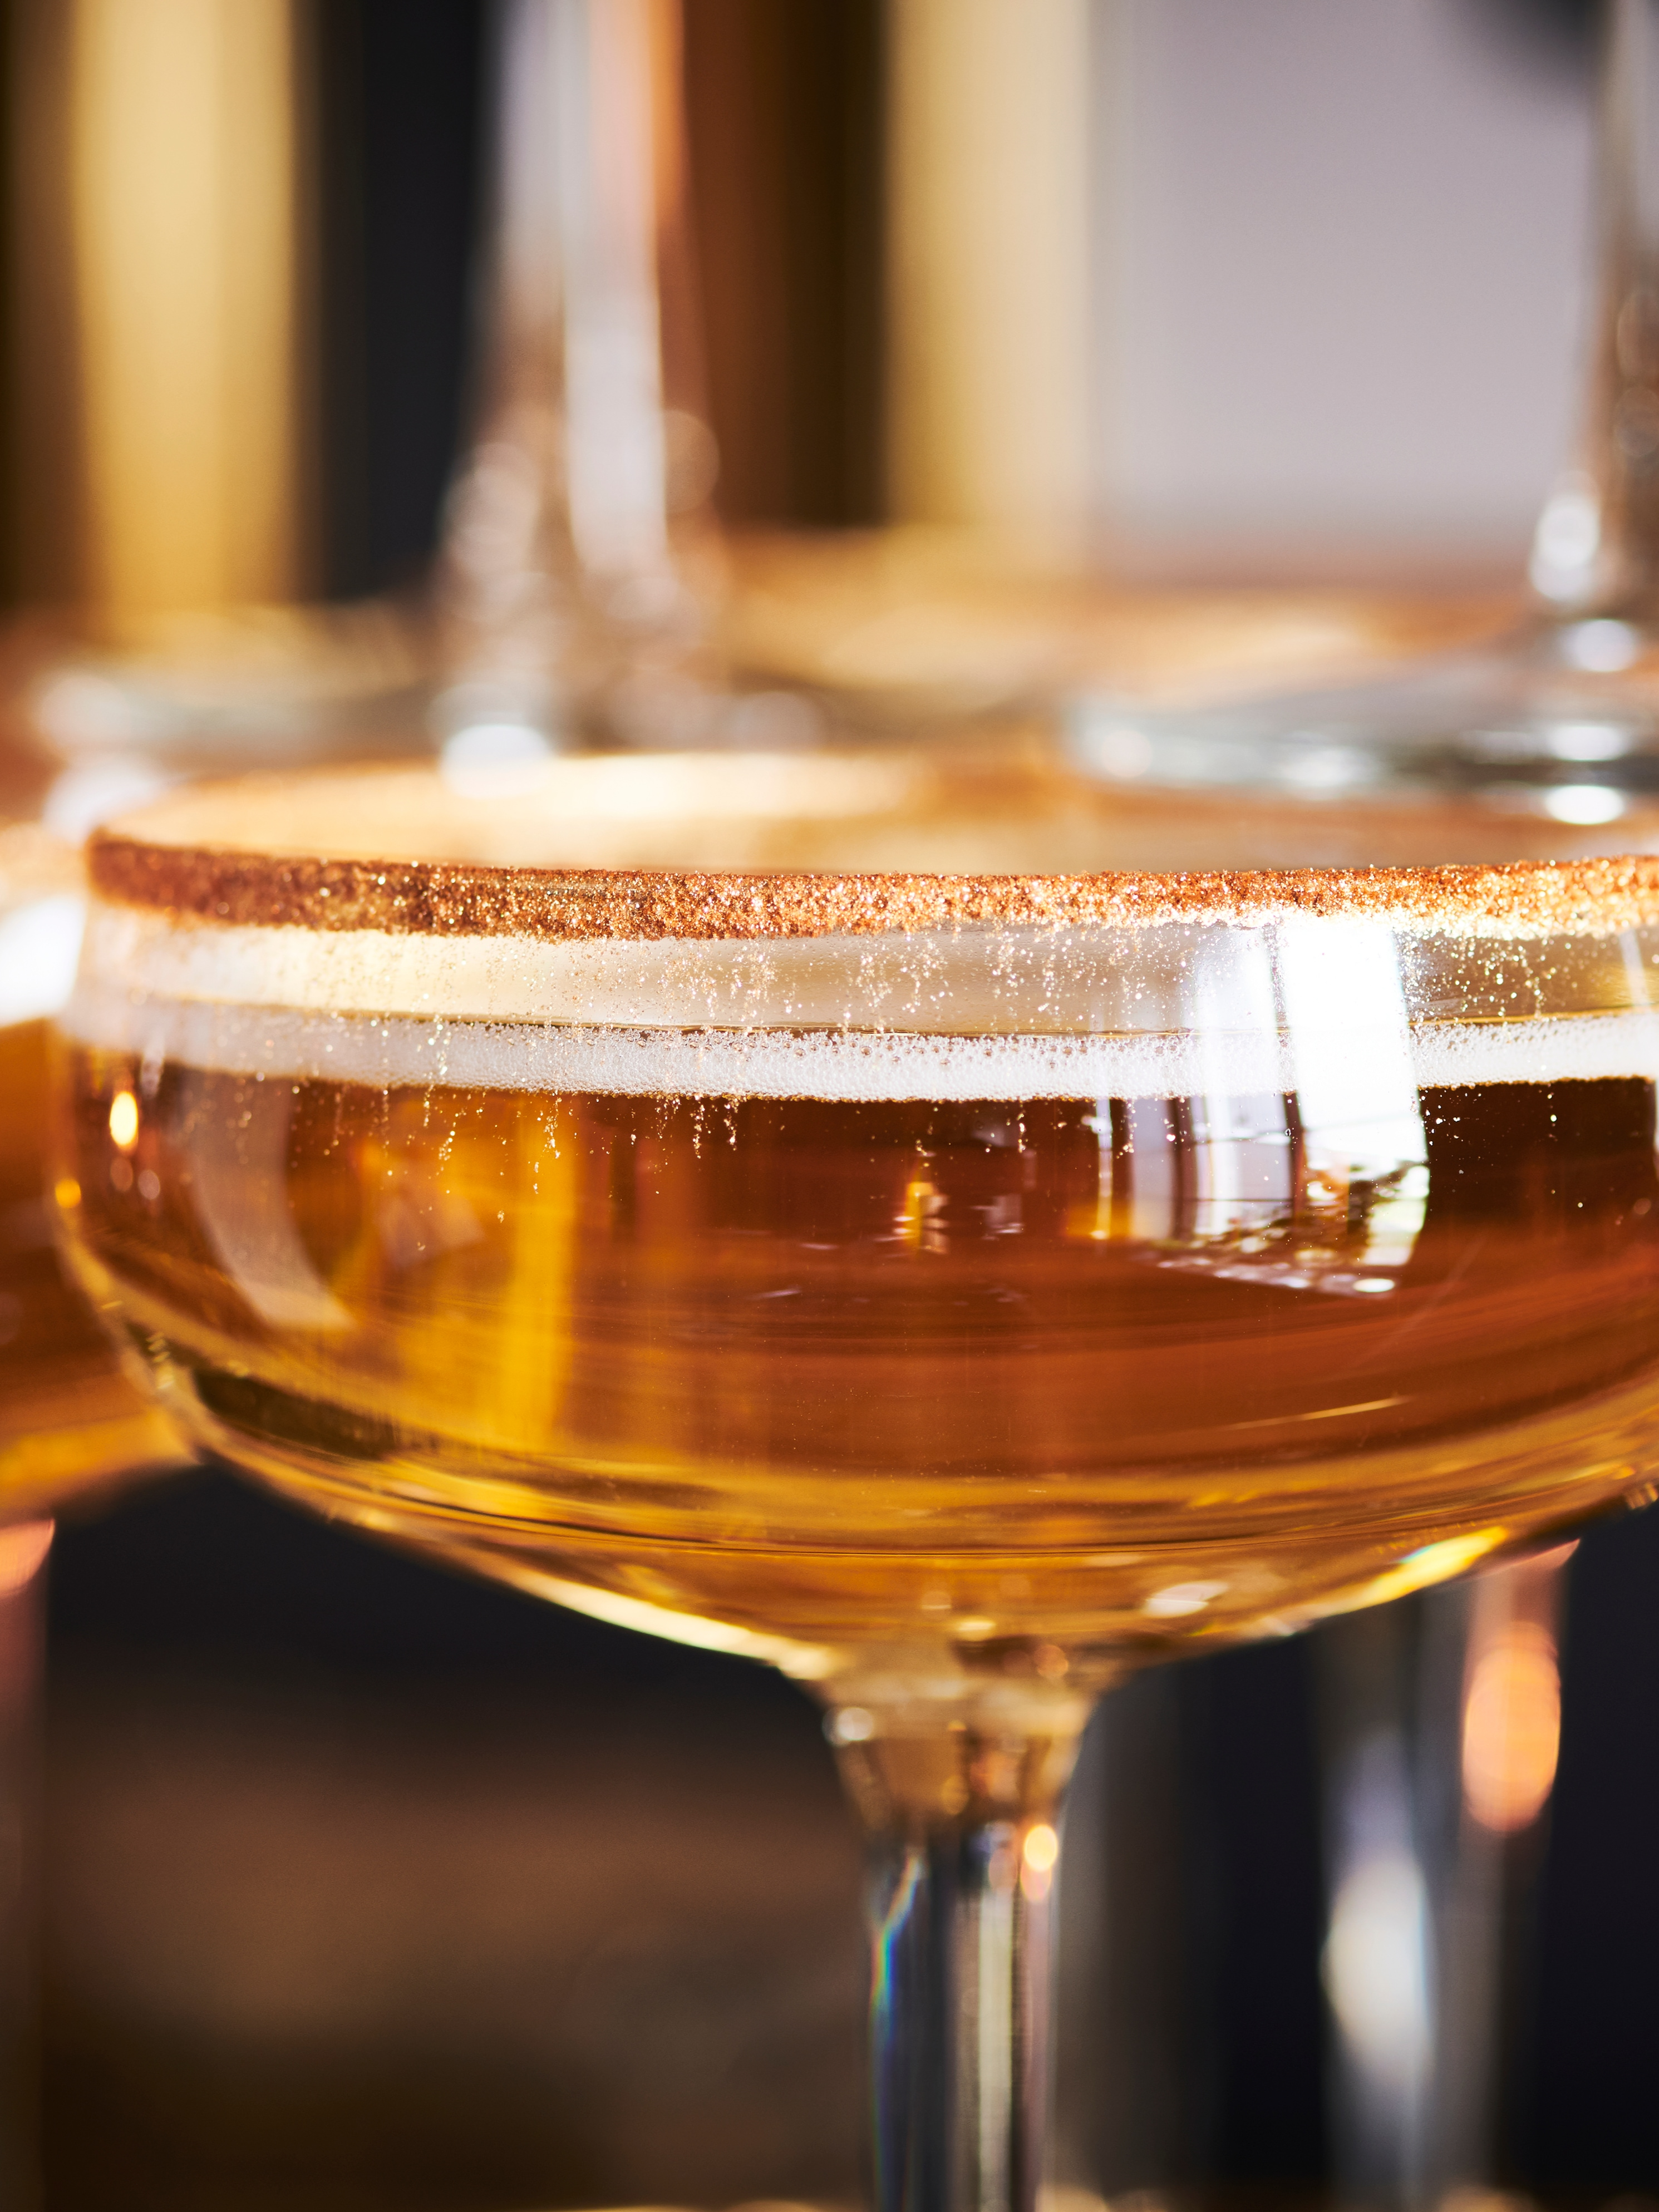 A close-up of STORHET champagne coupe shows it is filled with an amber-coloured liquid and has edible gold on its rim.